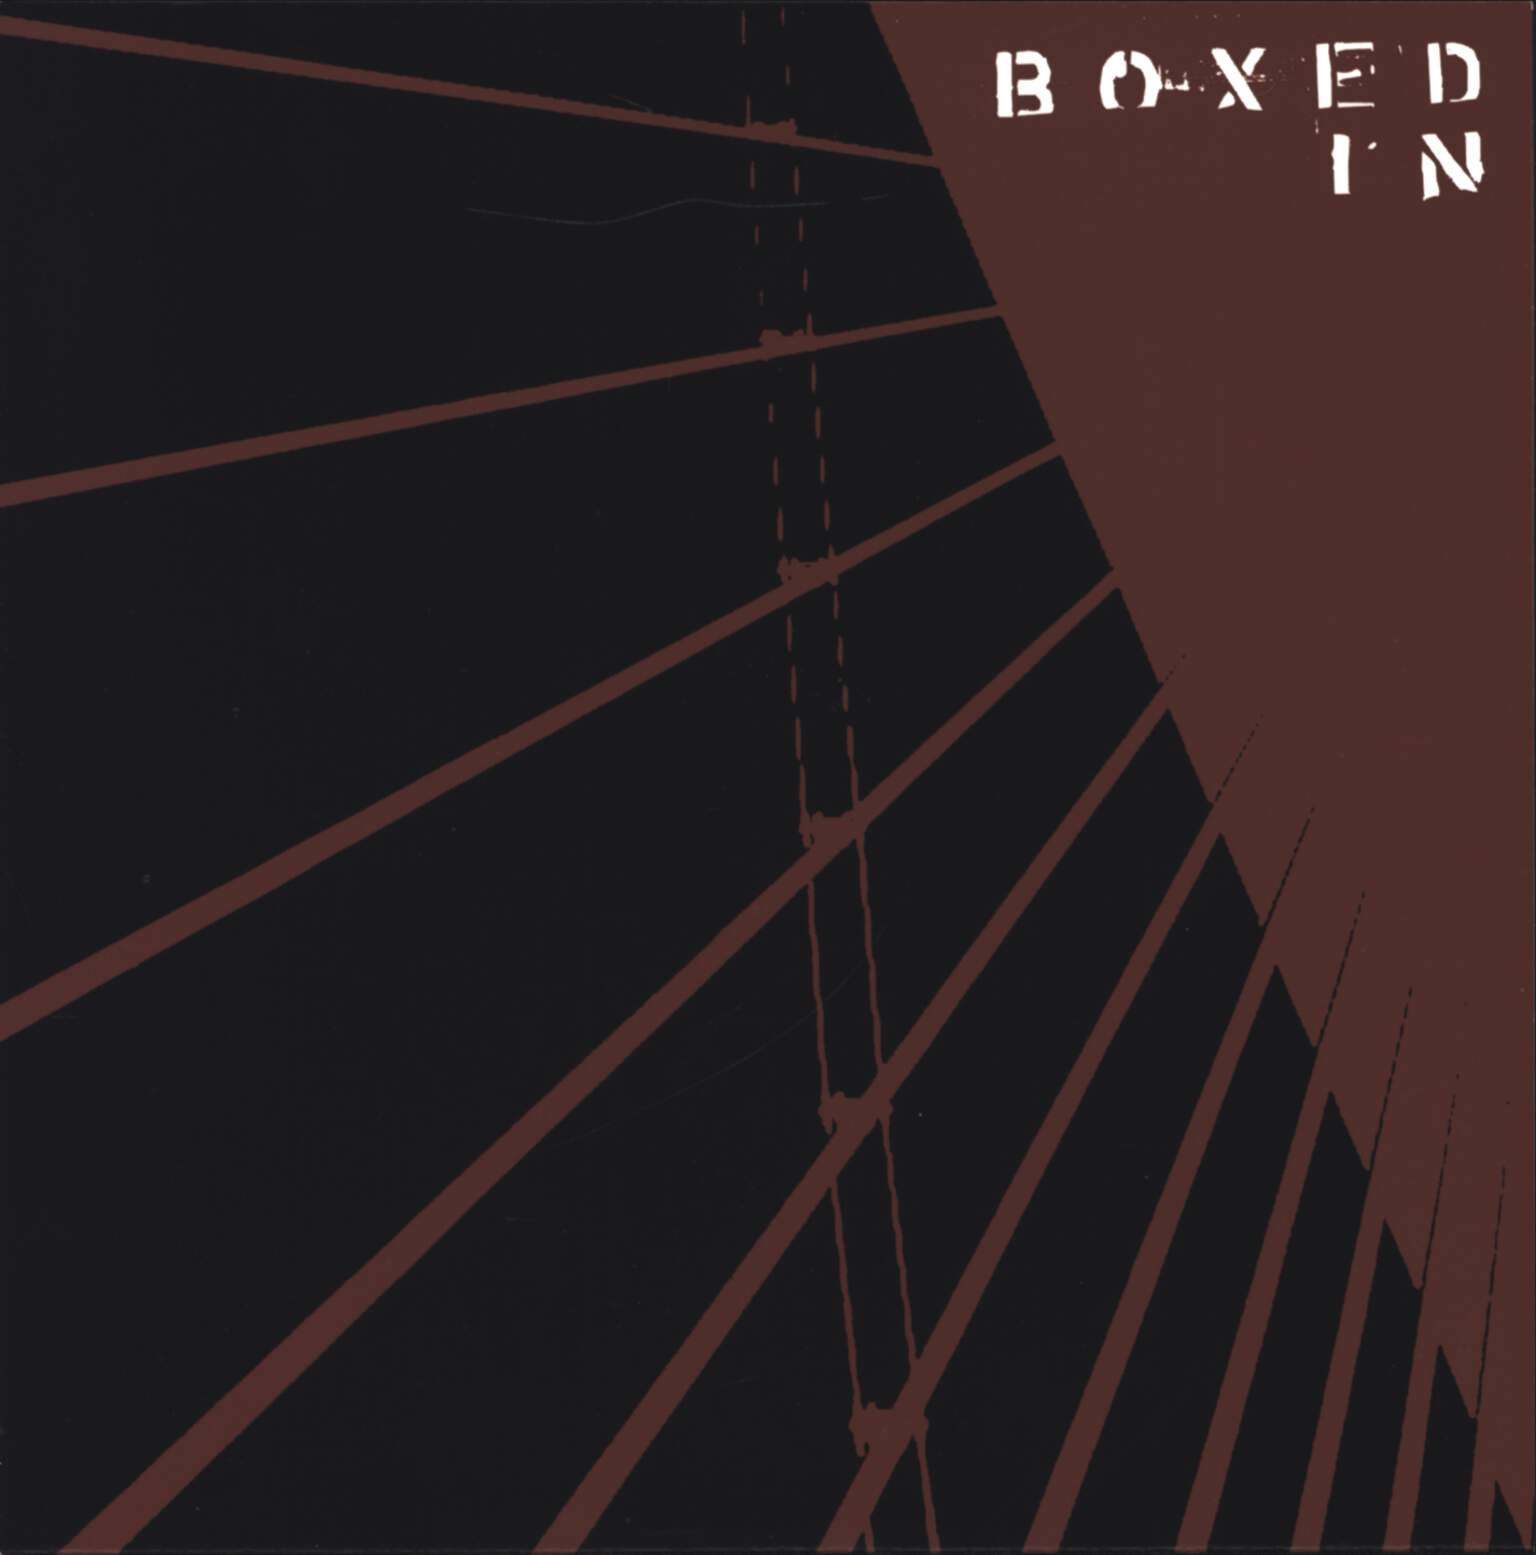 "Boxed in: Boxed In, 7"" Single (Vinyl)"